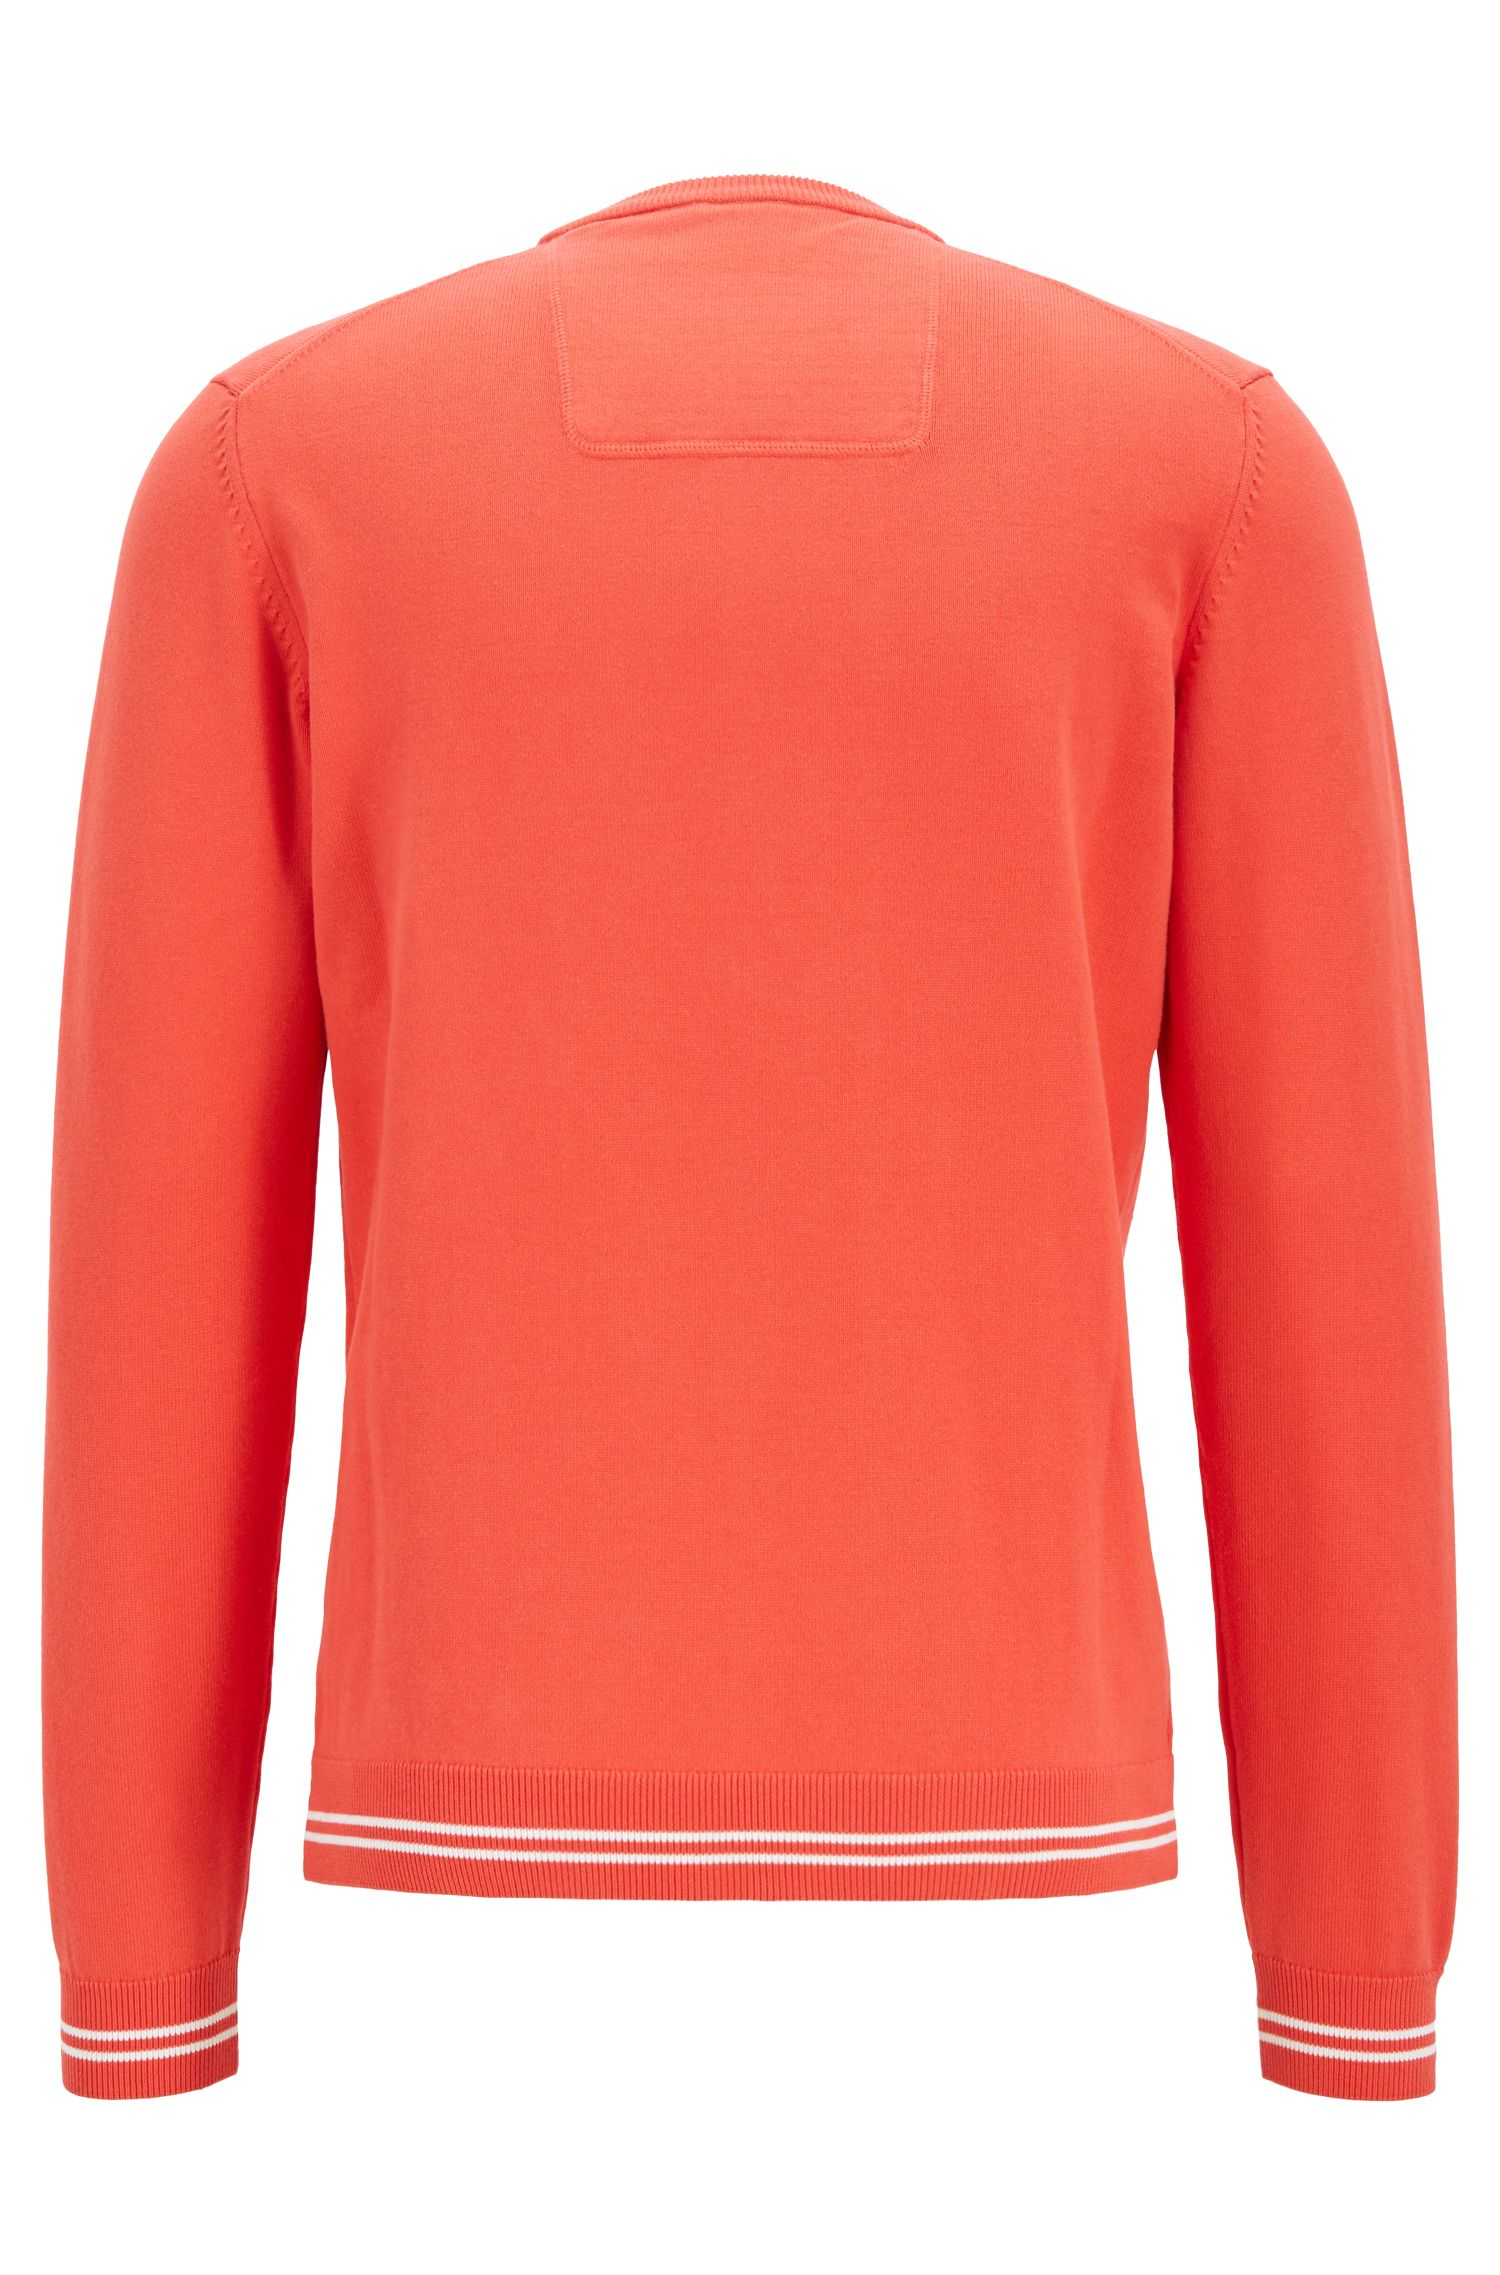 Cotton-blend knitted sweater with tipping stripes, Orange